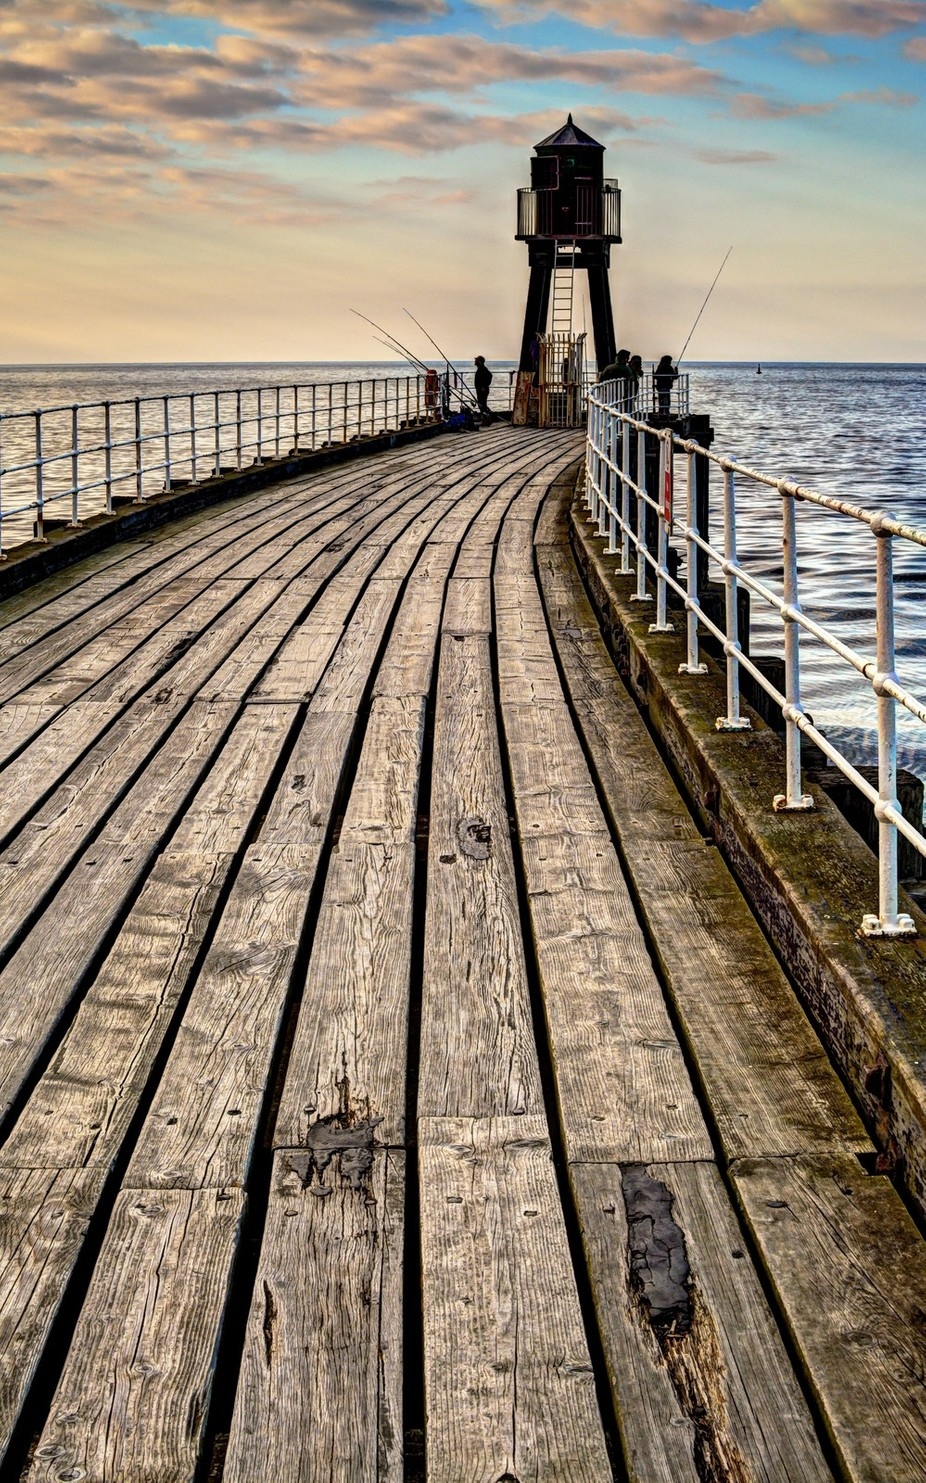 Evening Pier Fishing - Whitby, Yorkshire by A_B_digital - Fences Photo Contest